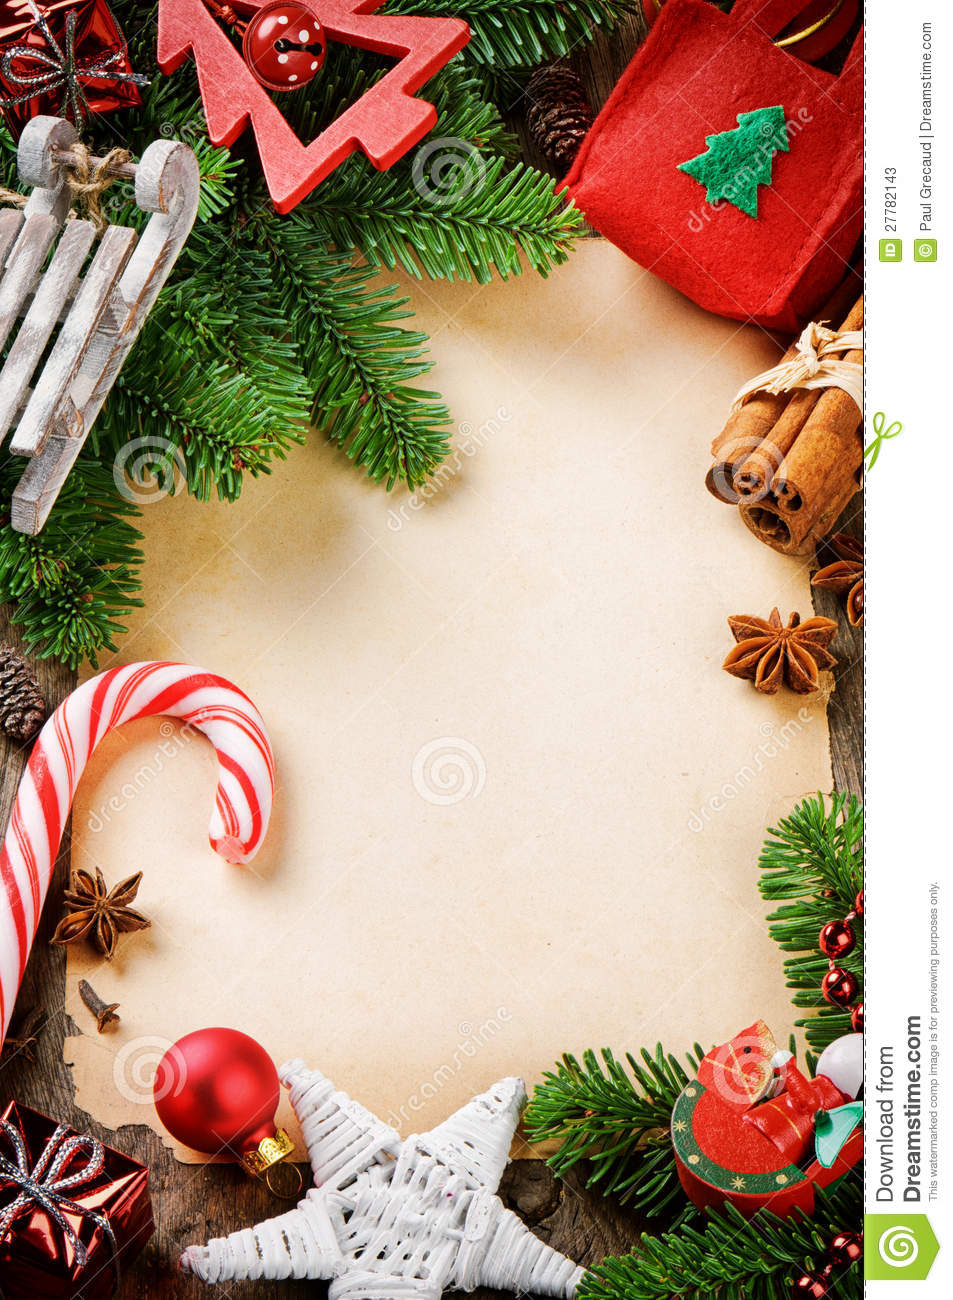 Frame With Vintage Christmas Decorations Stock Image - Image of ...